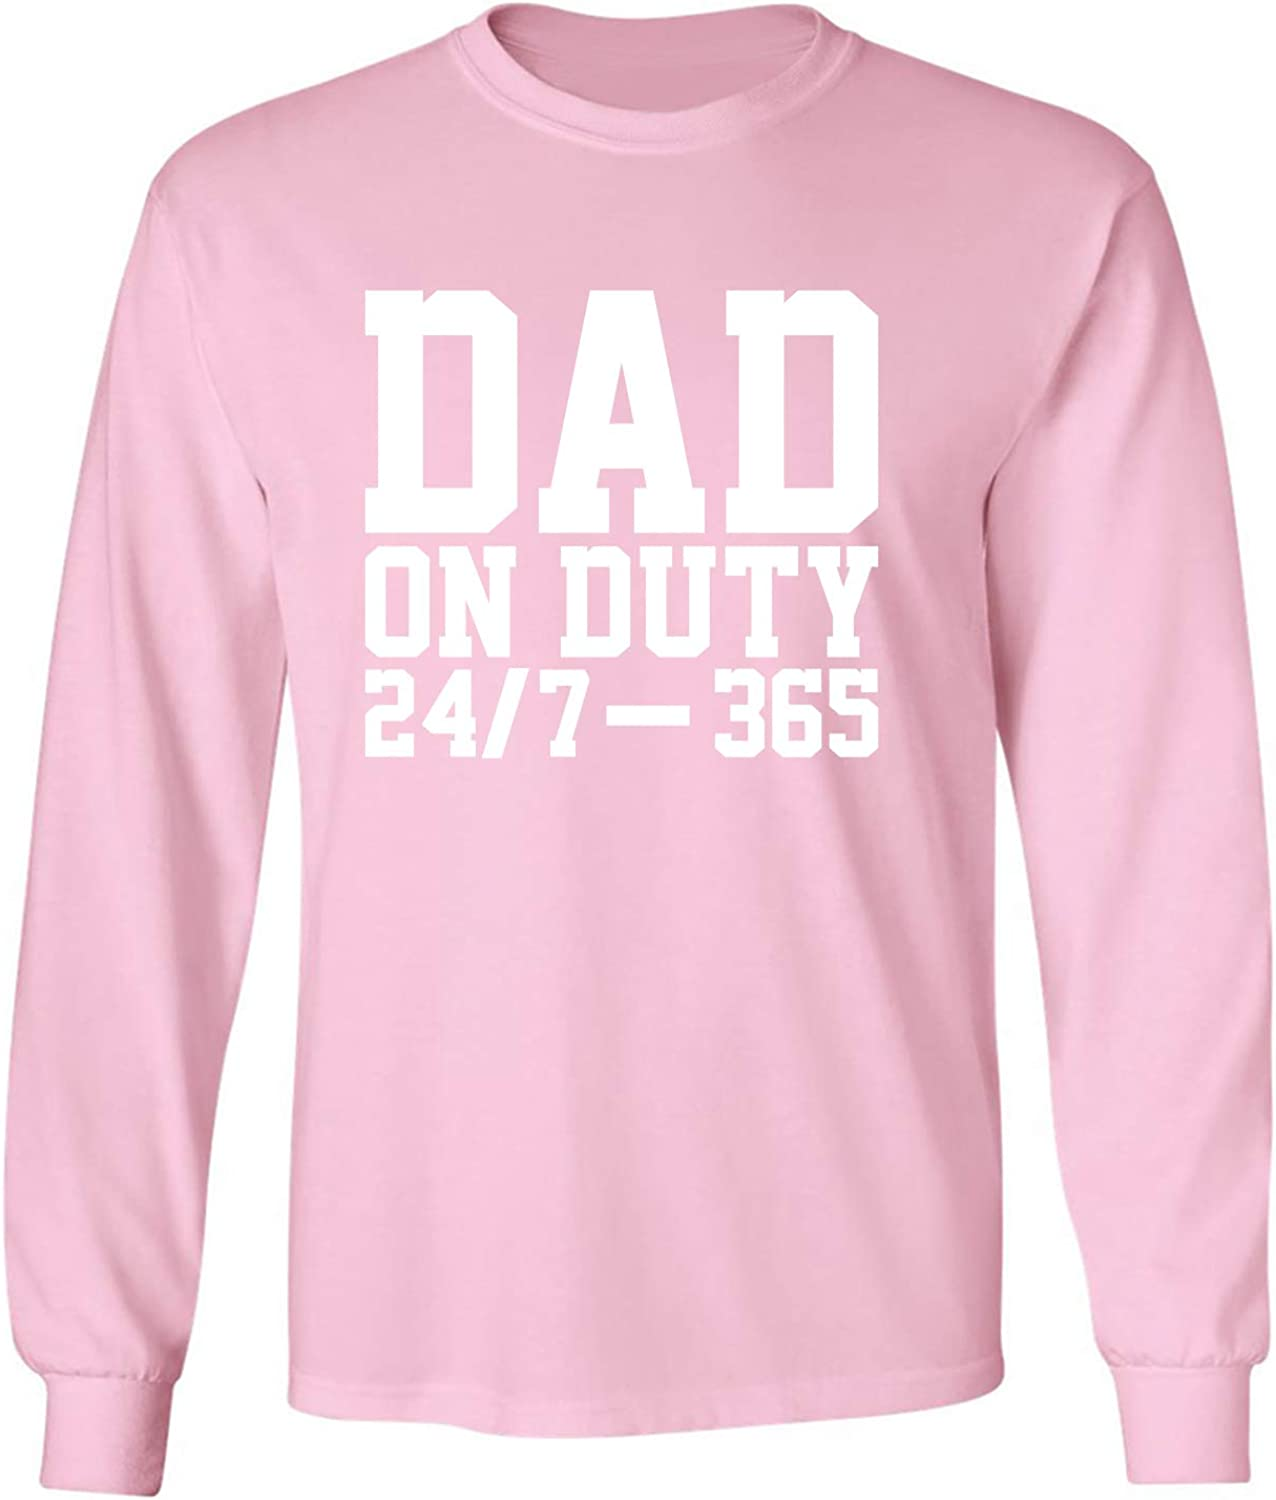 DAD ON Duty 24/7 365 Adult Long Sleeve T-Shirt